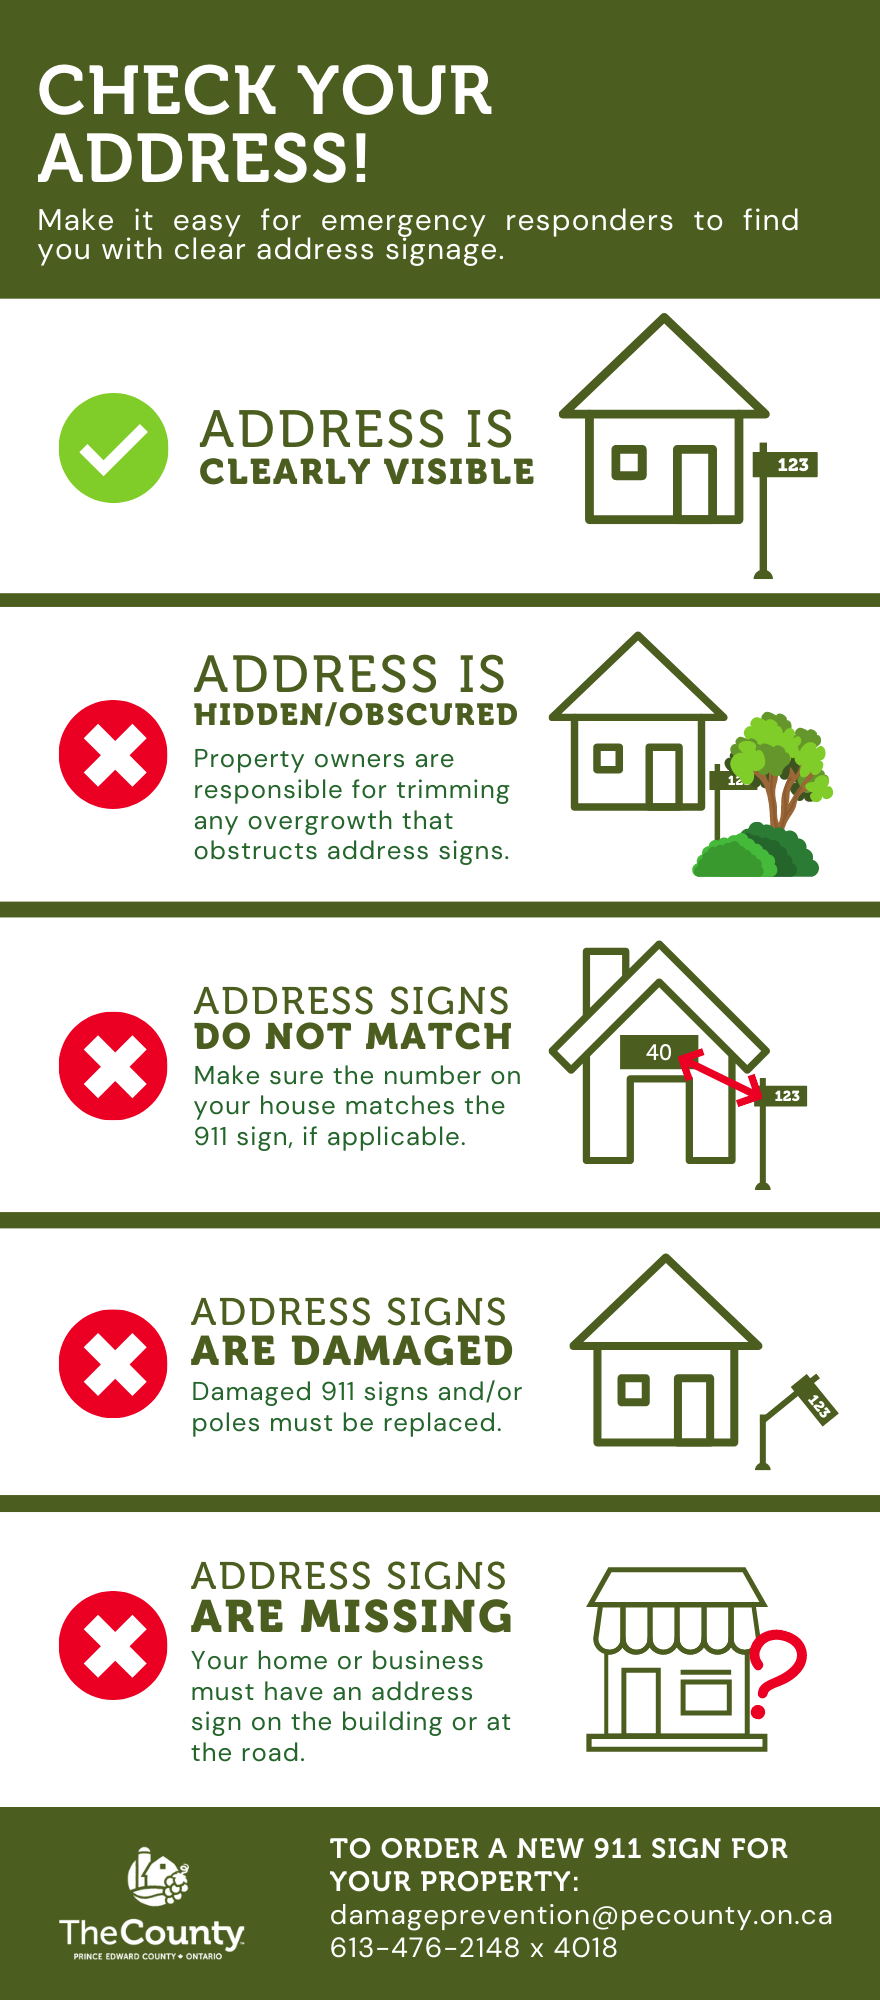 Infographic reiterating the text of the notice with visual representations of the various address sign issues.